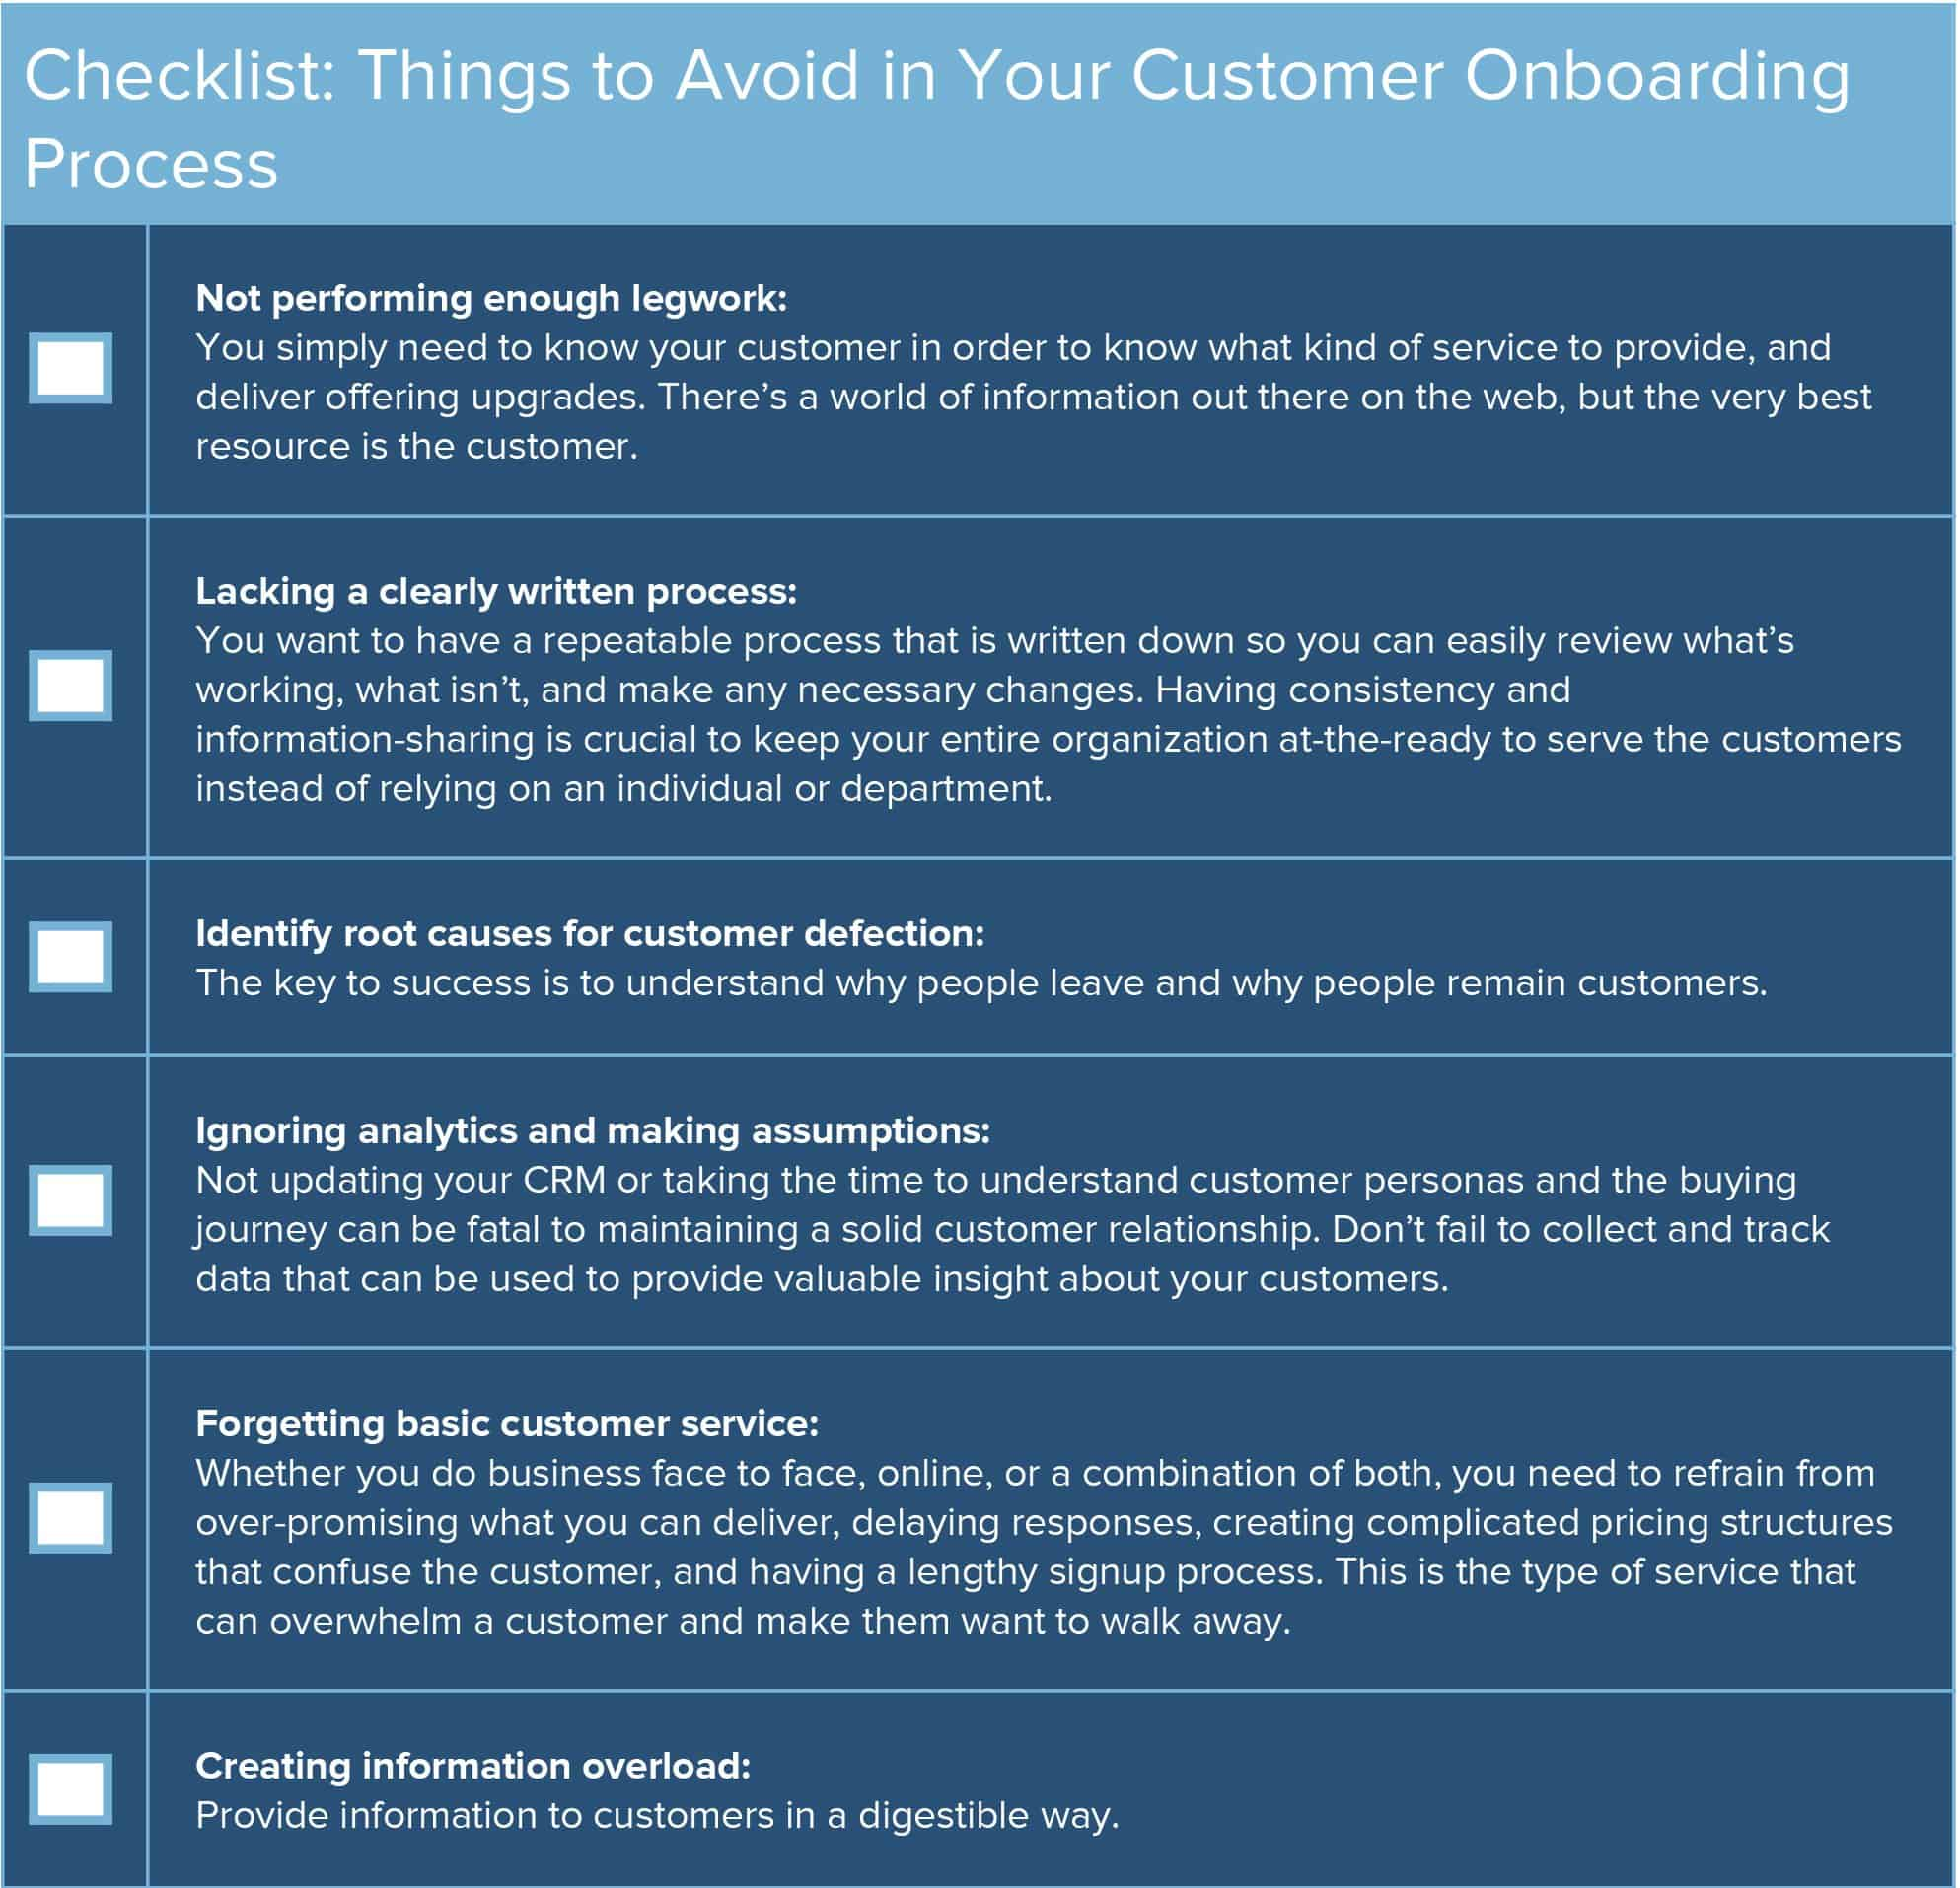 Customer Onboarding Expert Tips and Tools | Smartsheet